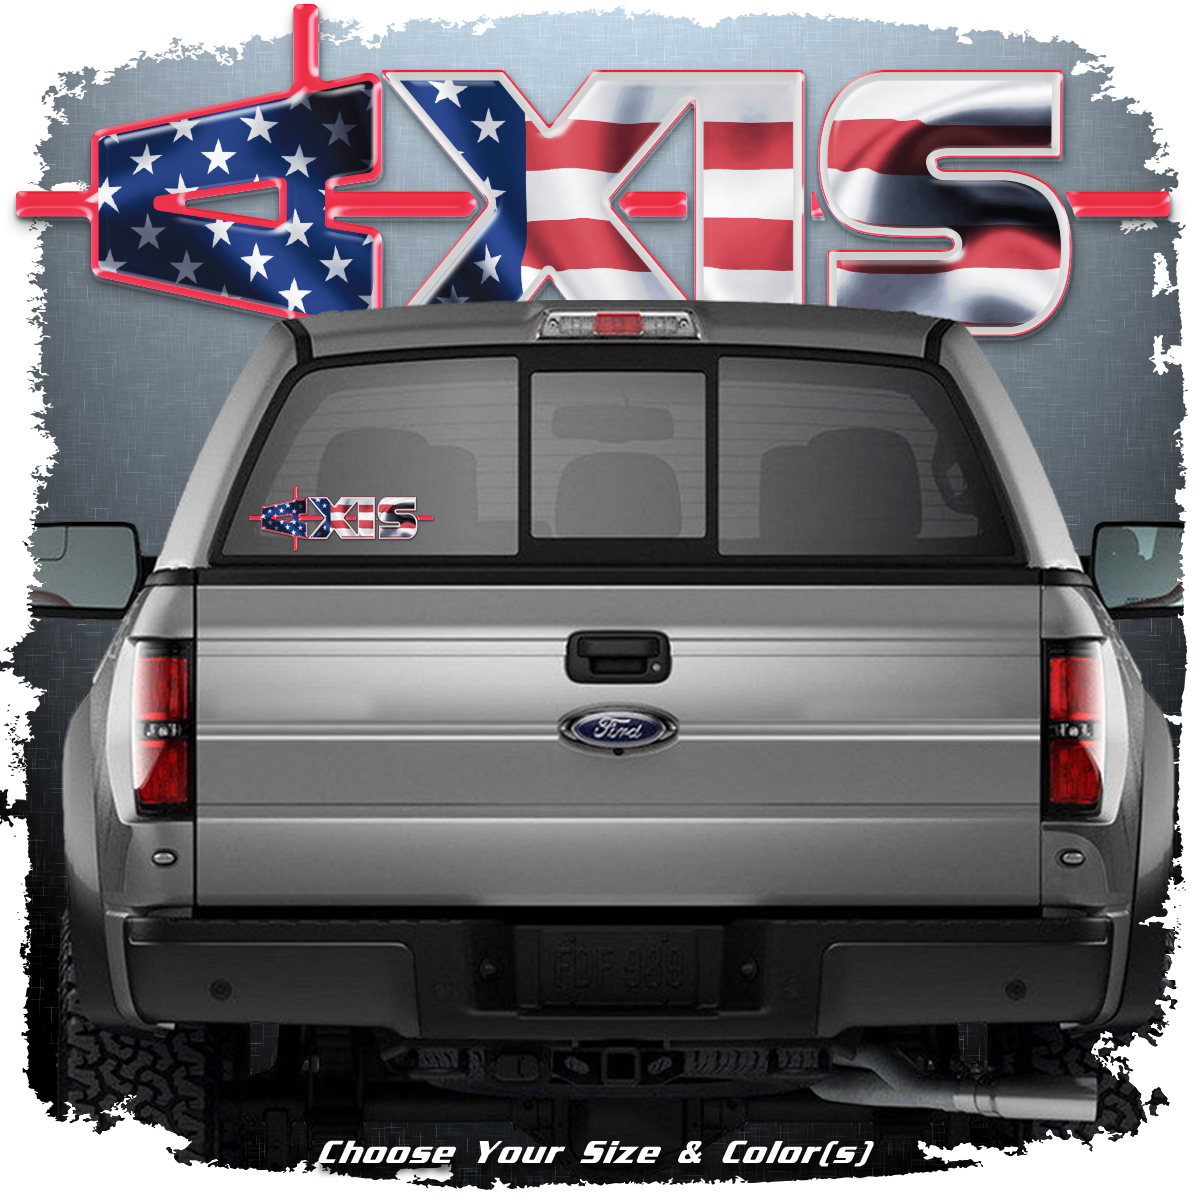 AXIS Truck Decal with Flag Pattern